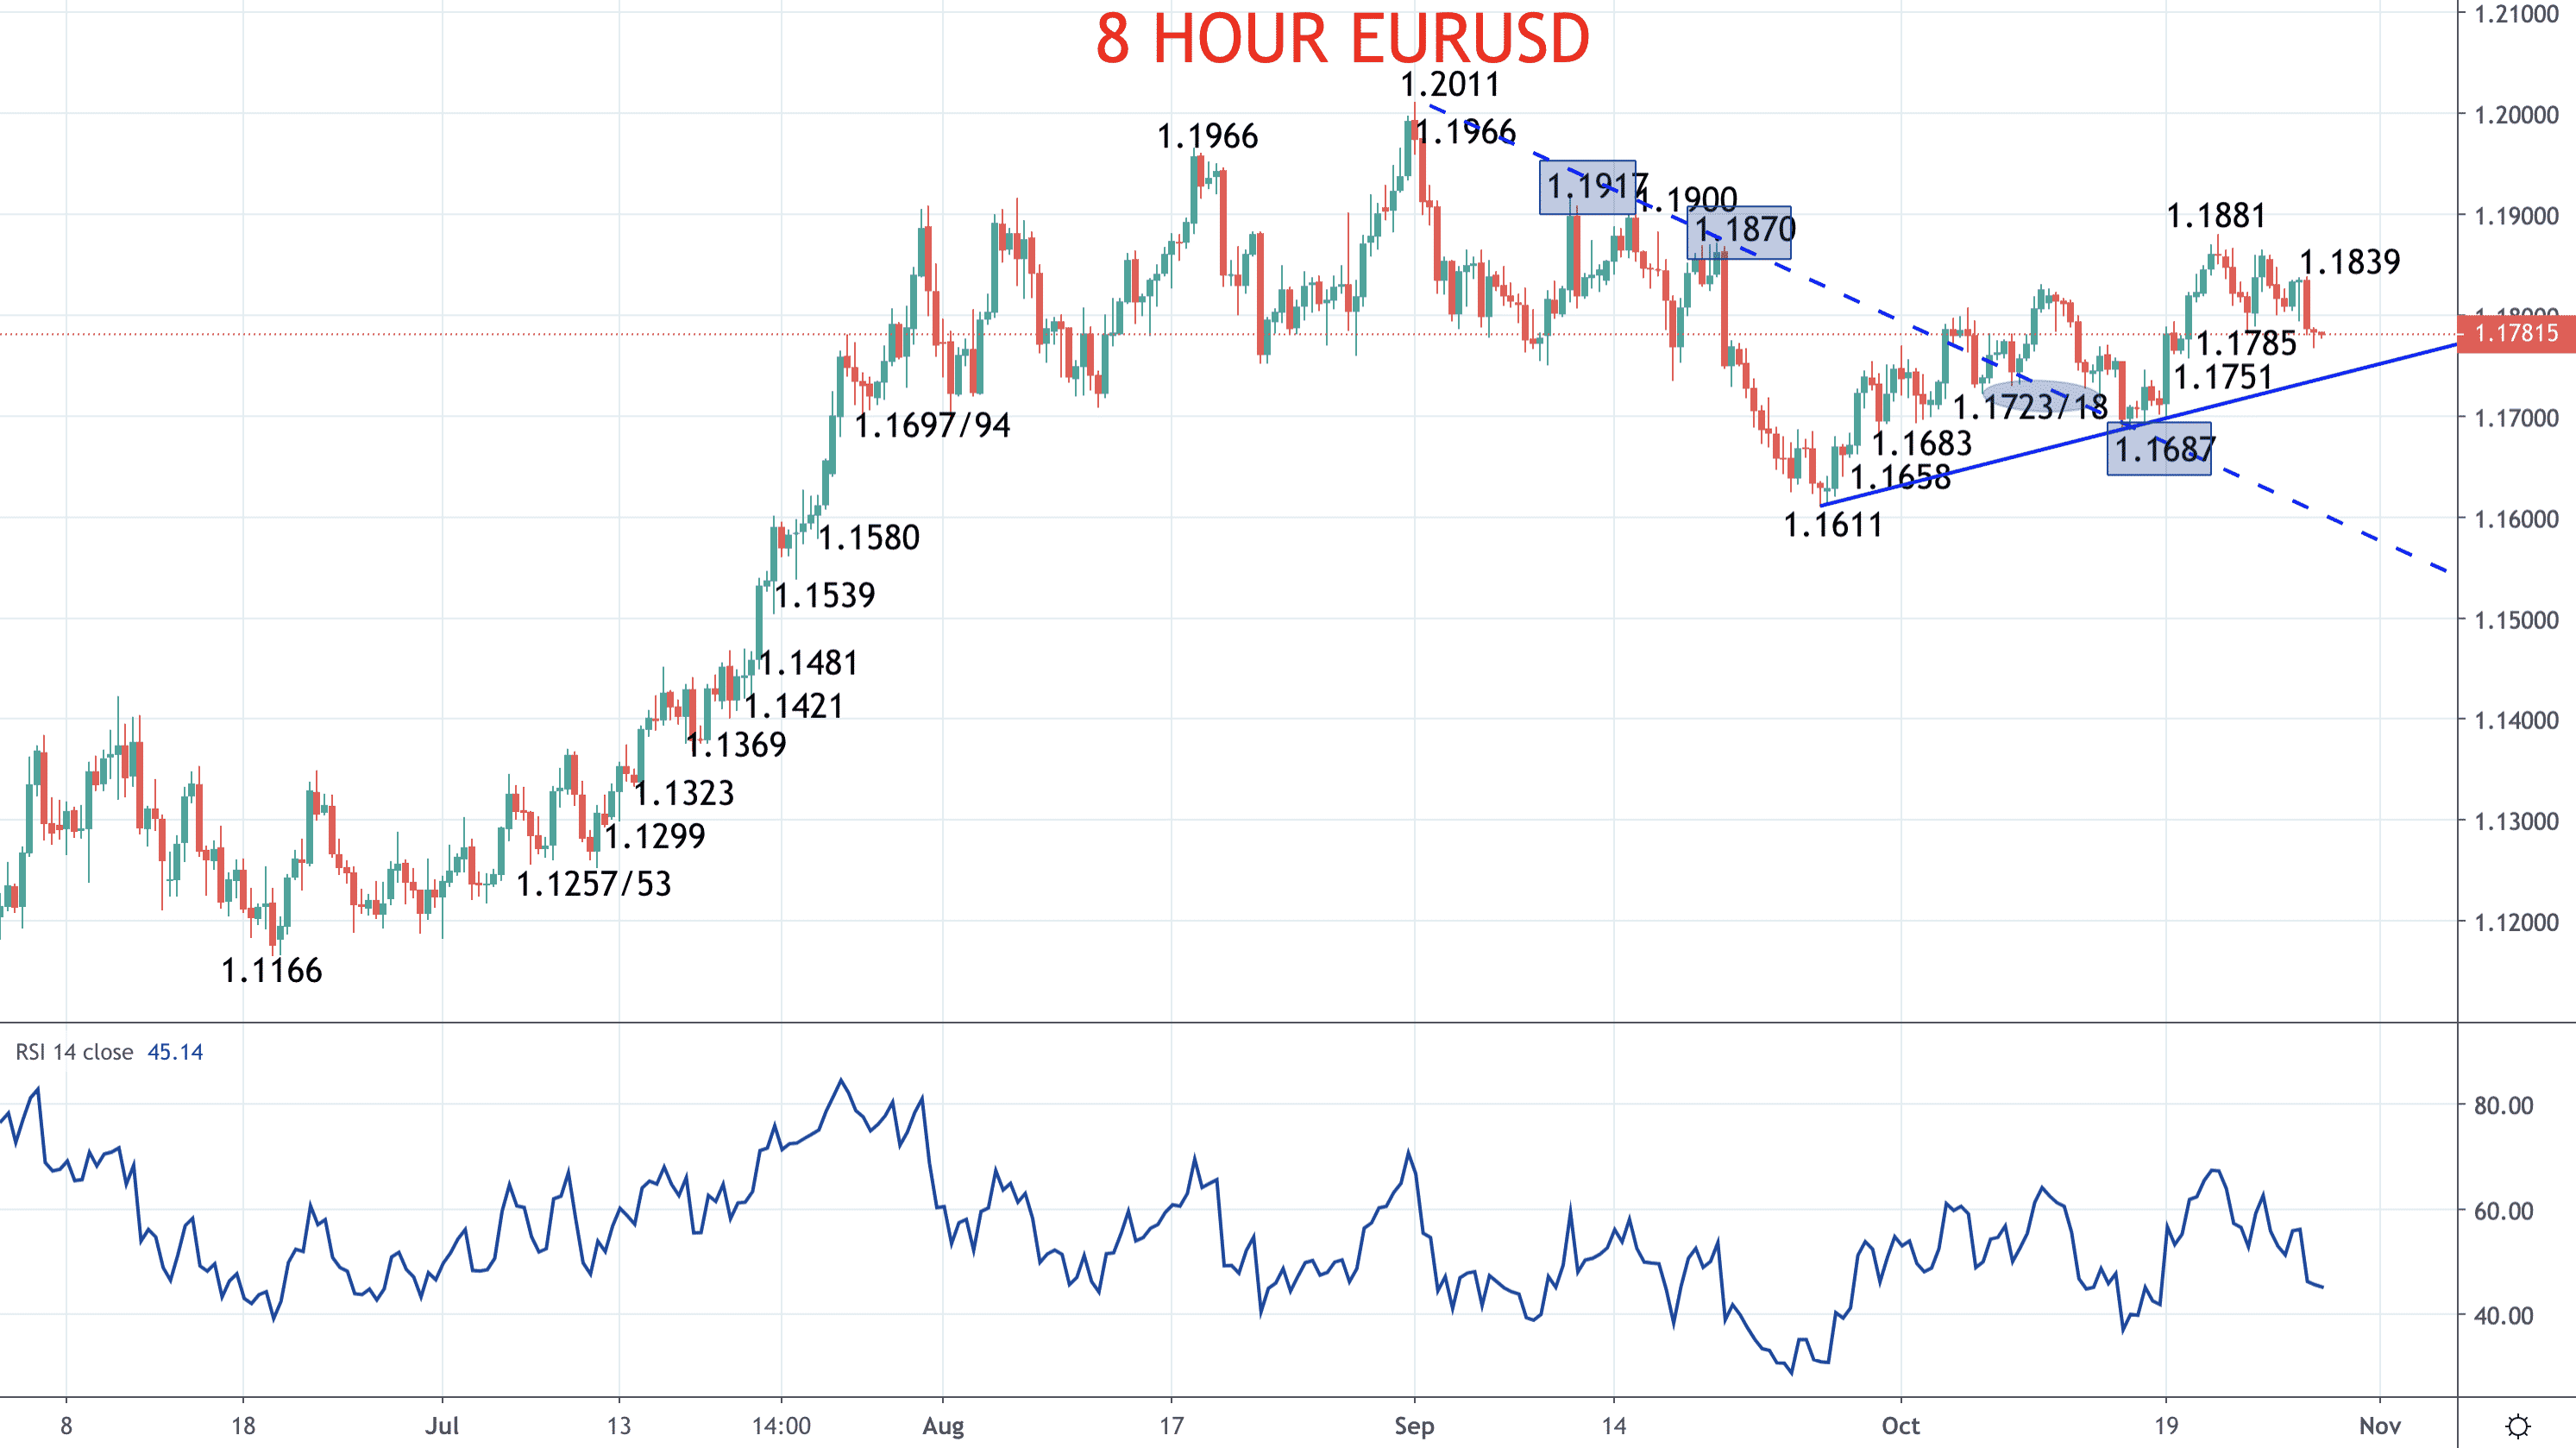 Euro and Pound outlooks mixed as EU-UK talks continue (EURUSD and GBPUSD forecasts) Image